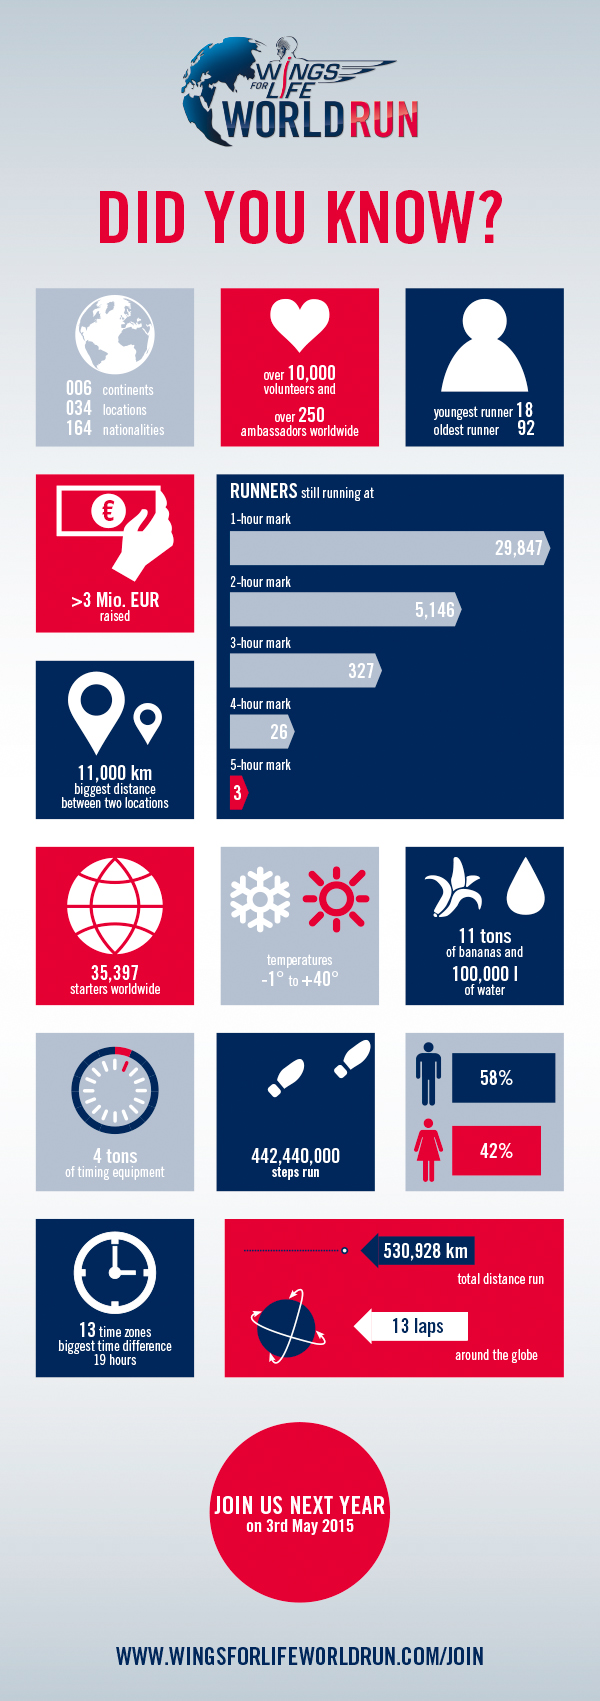 Wings For Life World Run 2014 Infografik